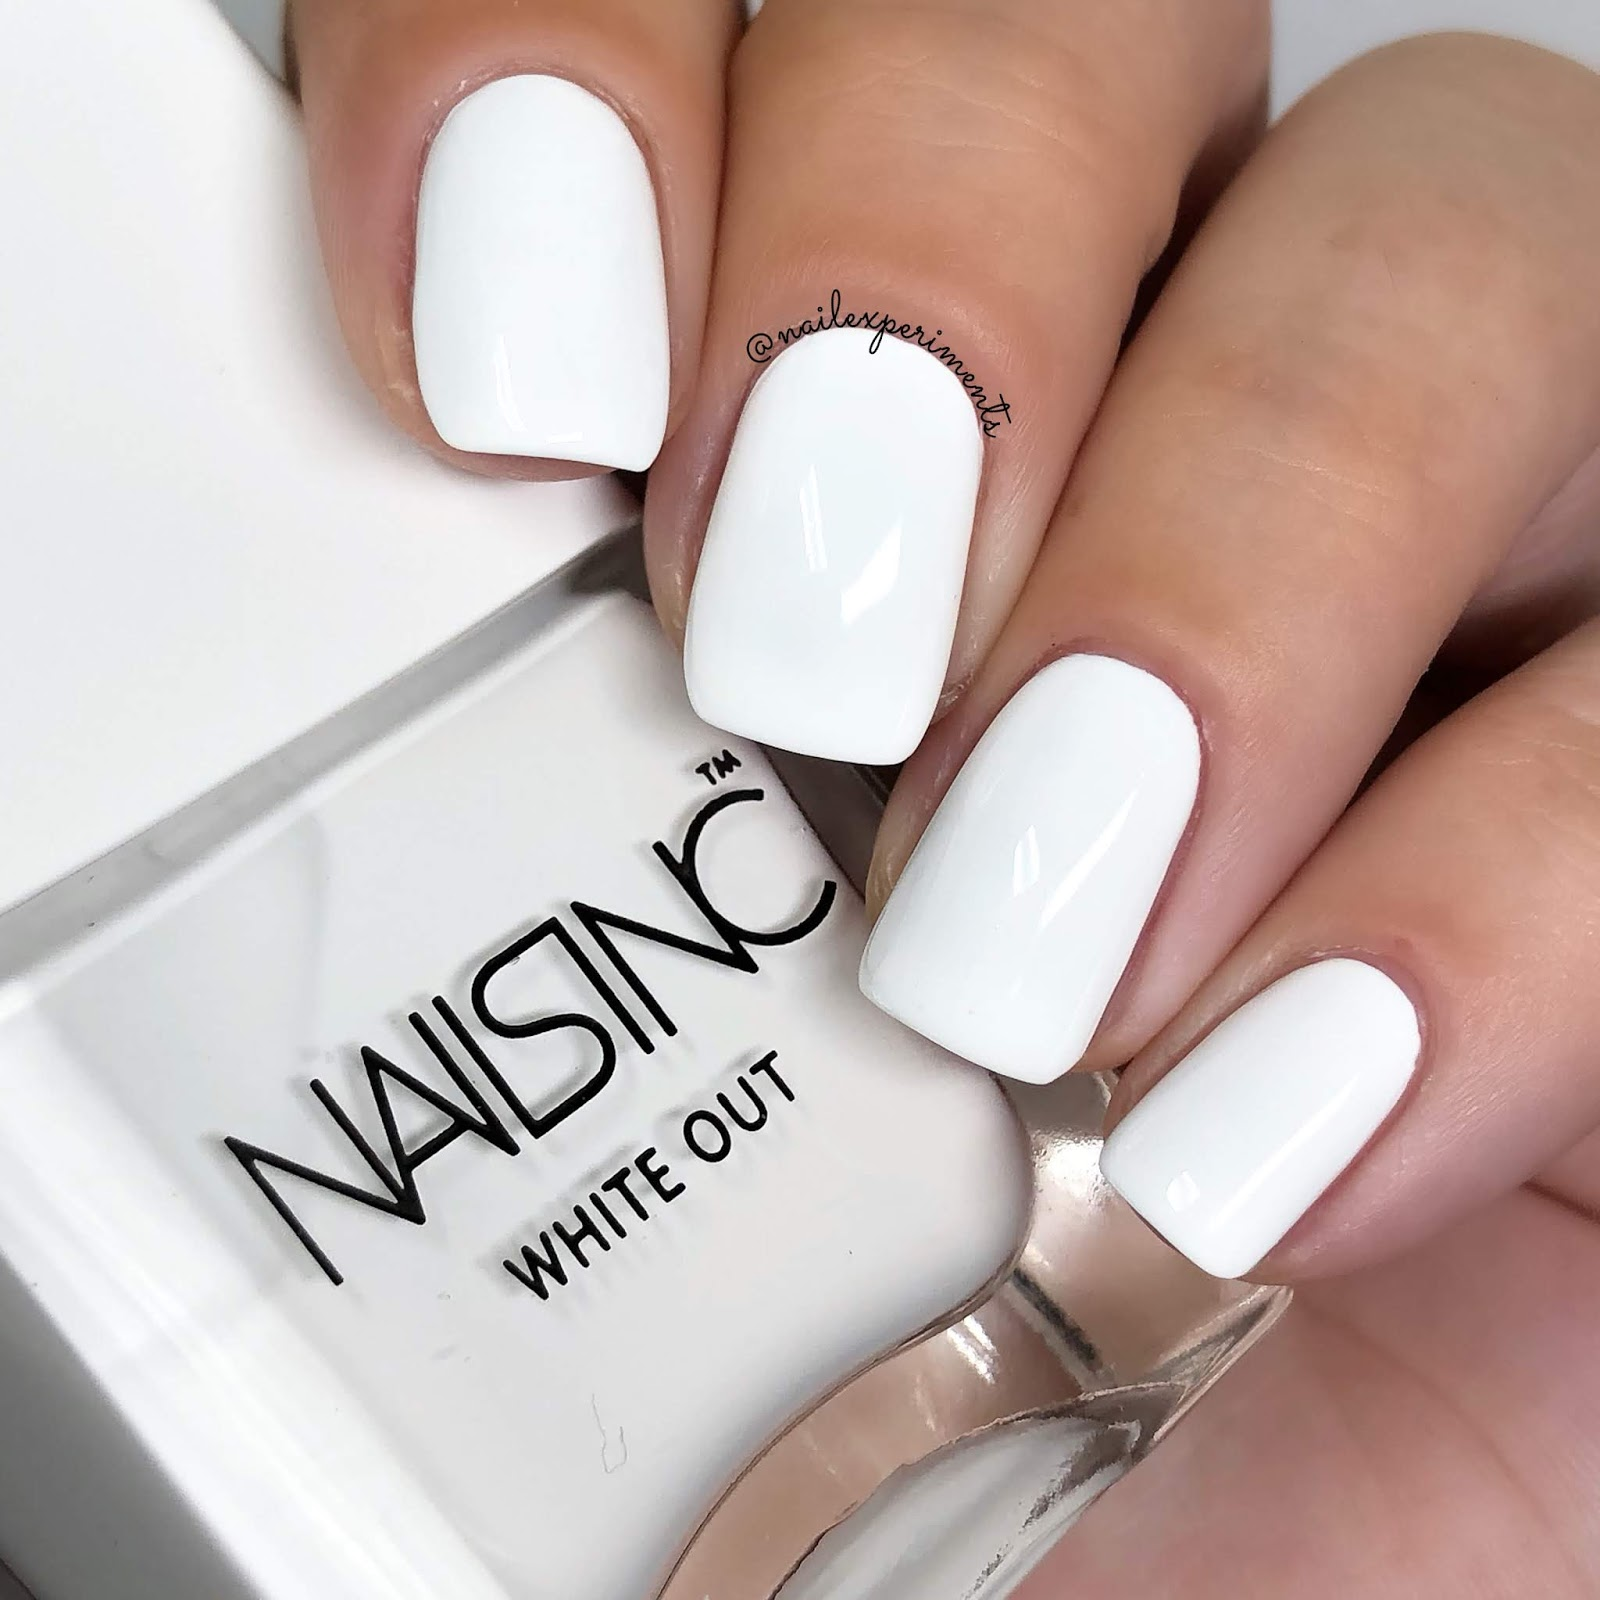 Nails Inc White Out Bright Ambition Summer 2018 Swatches